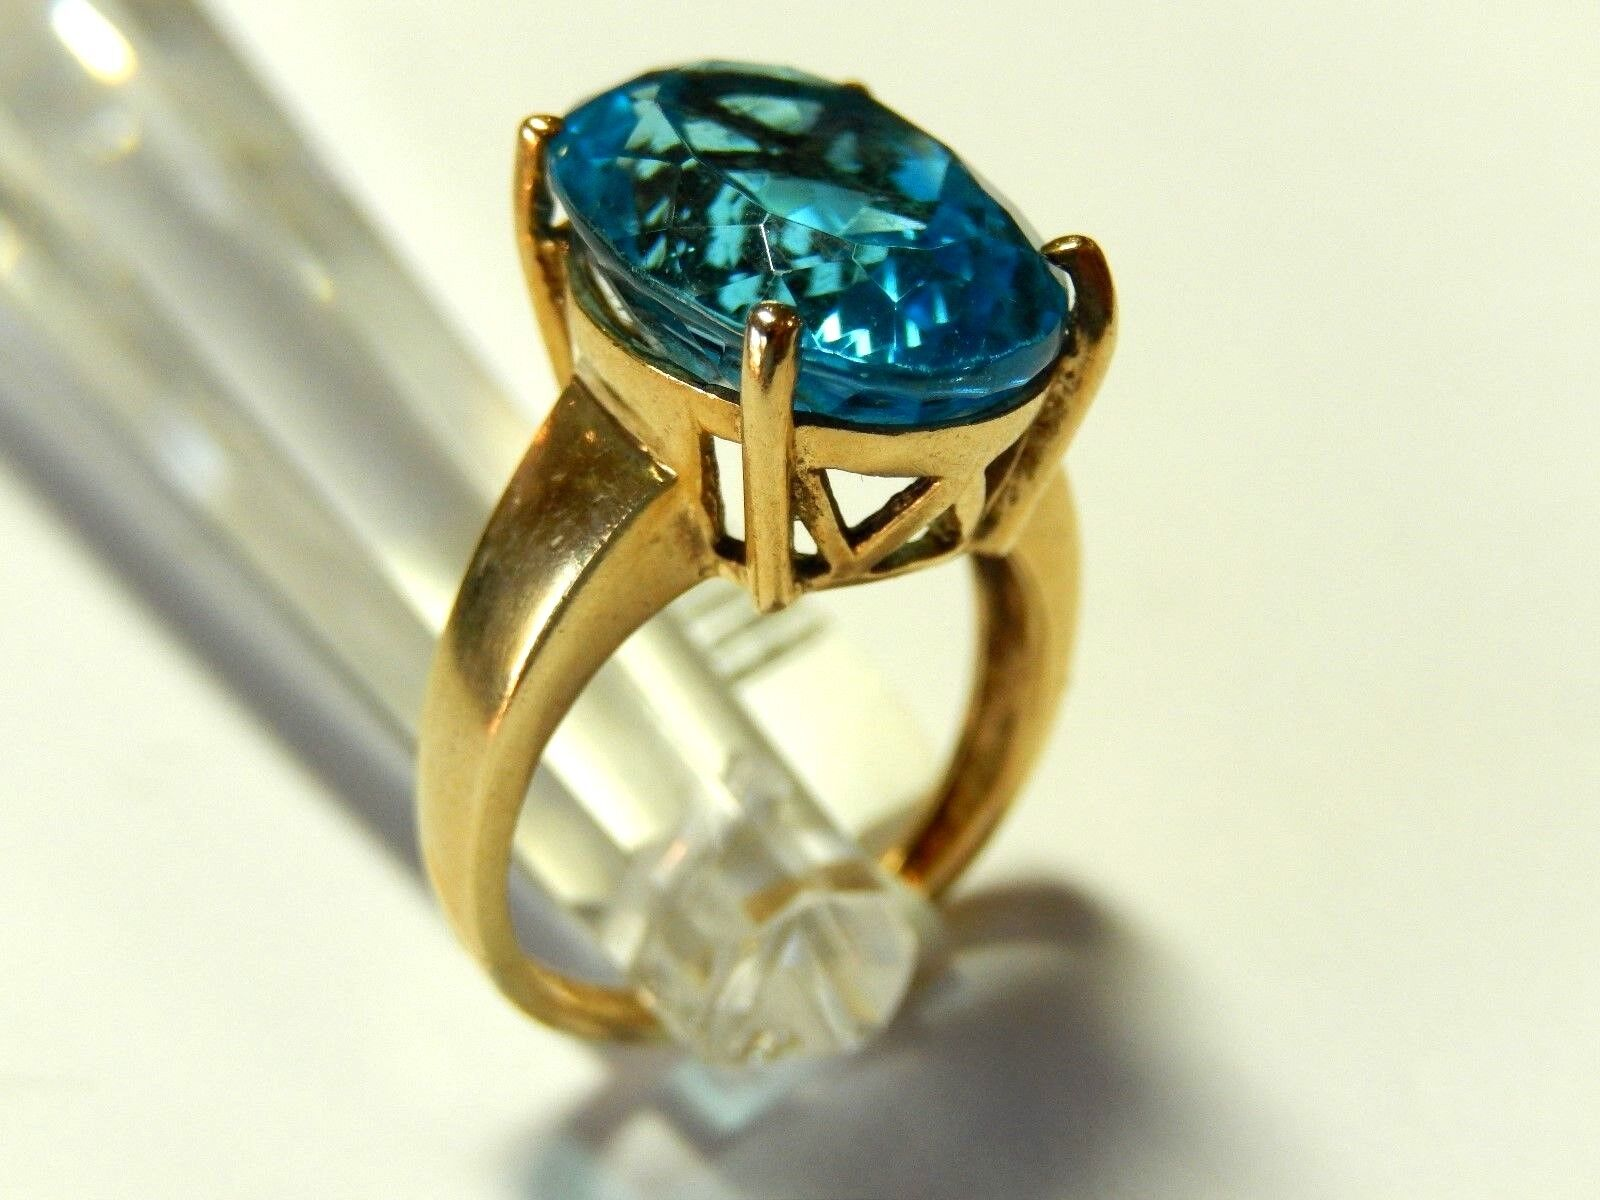 12 Carat Natural Oval London bluee Topaz 10K Solid Yellow gold Ring Size 7